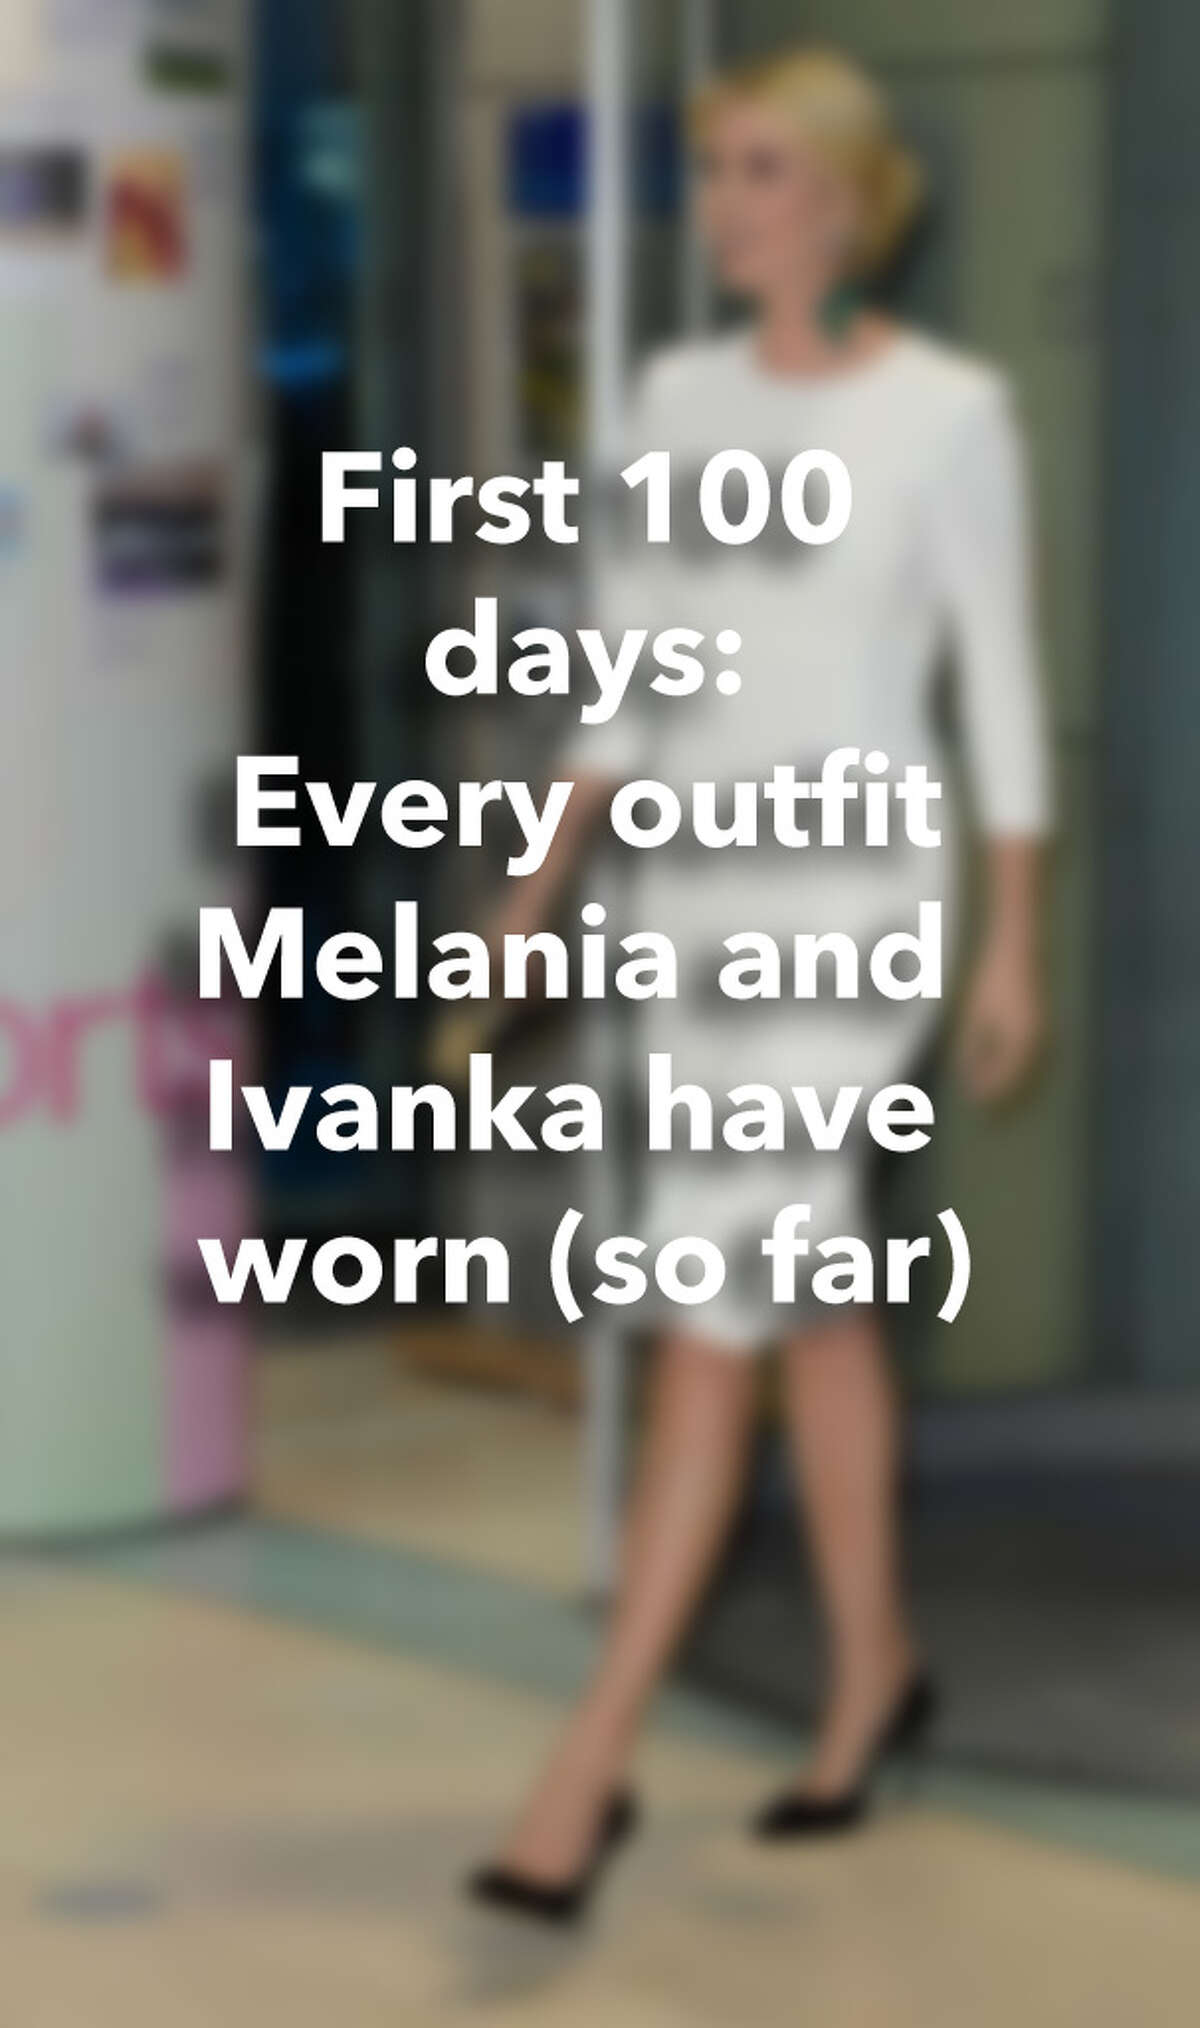 First 100 days: Every outfit Melania and Ivanka have worn (so far)